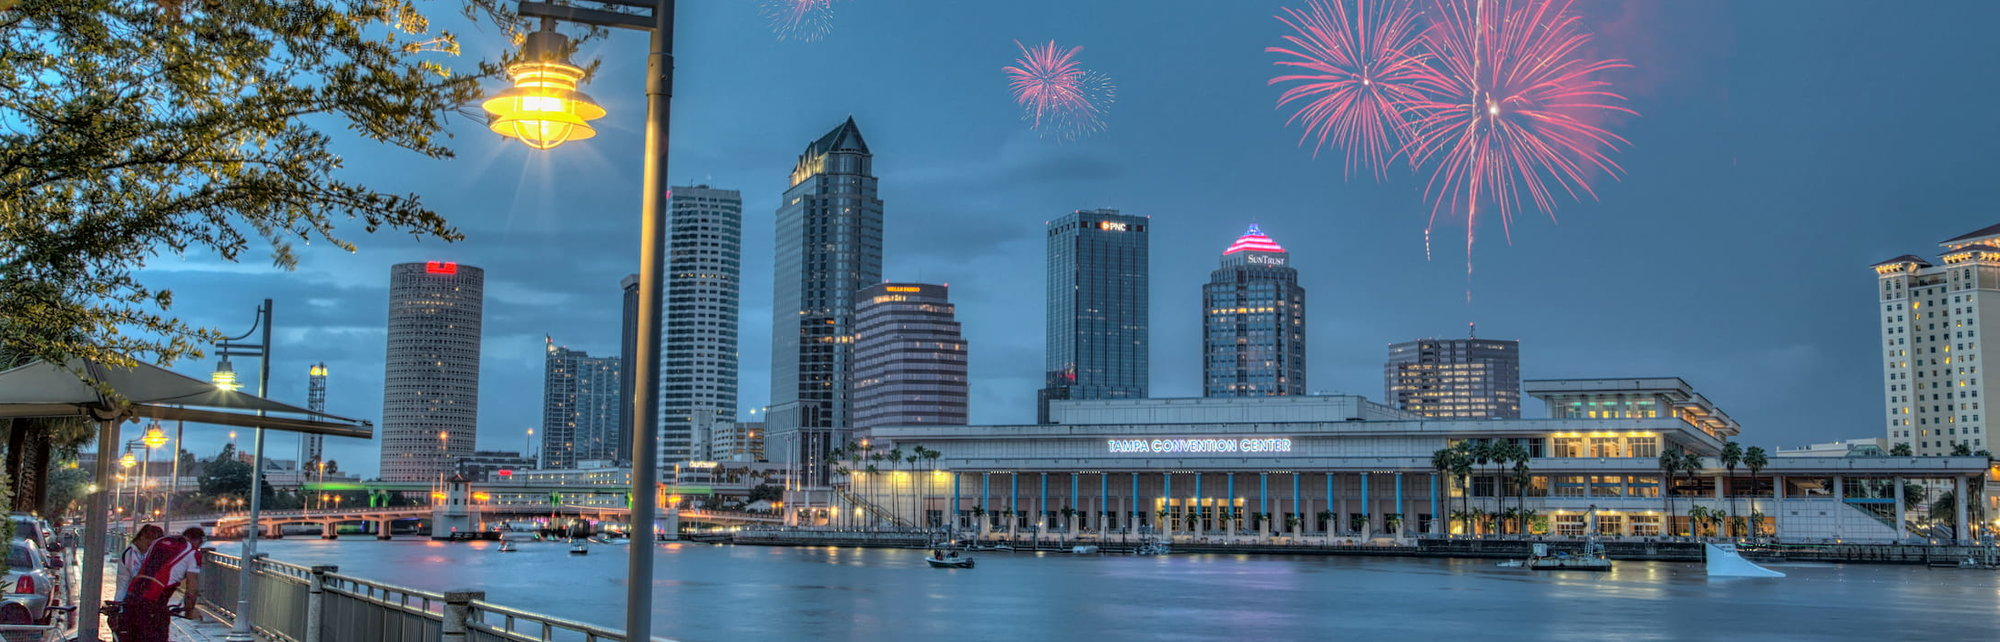 Tampa Fireworks Composite